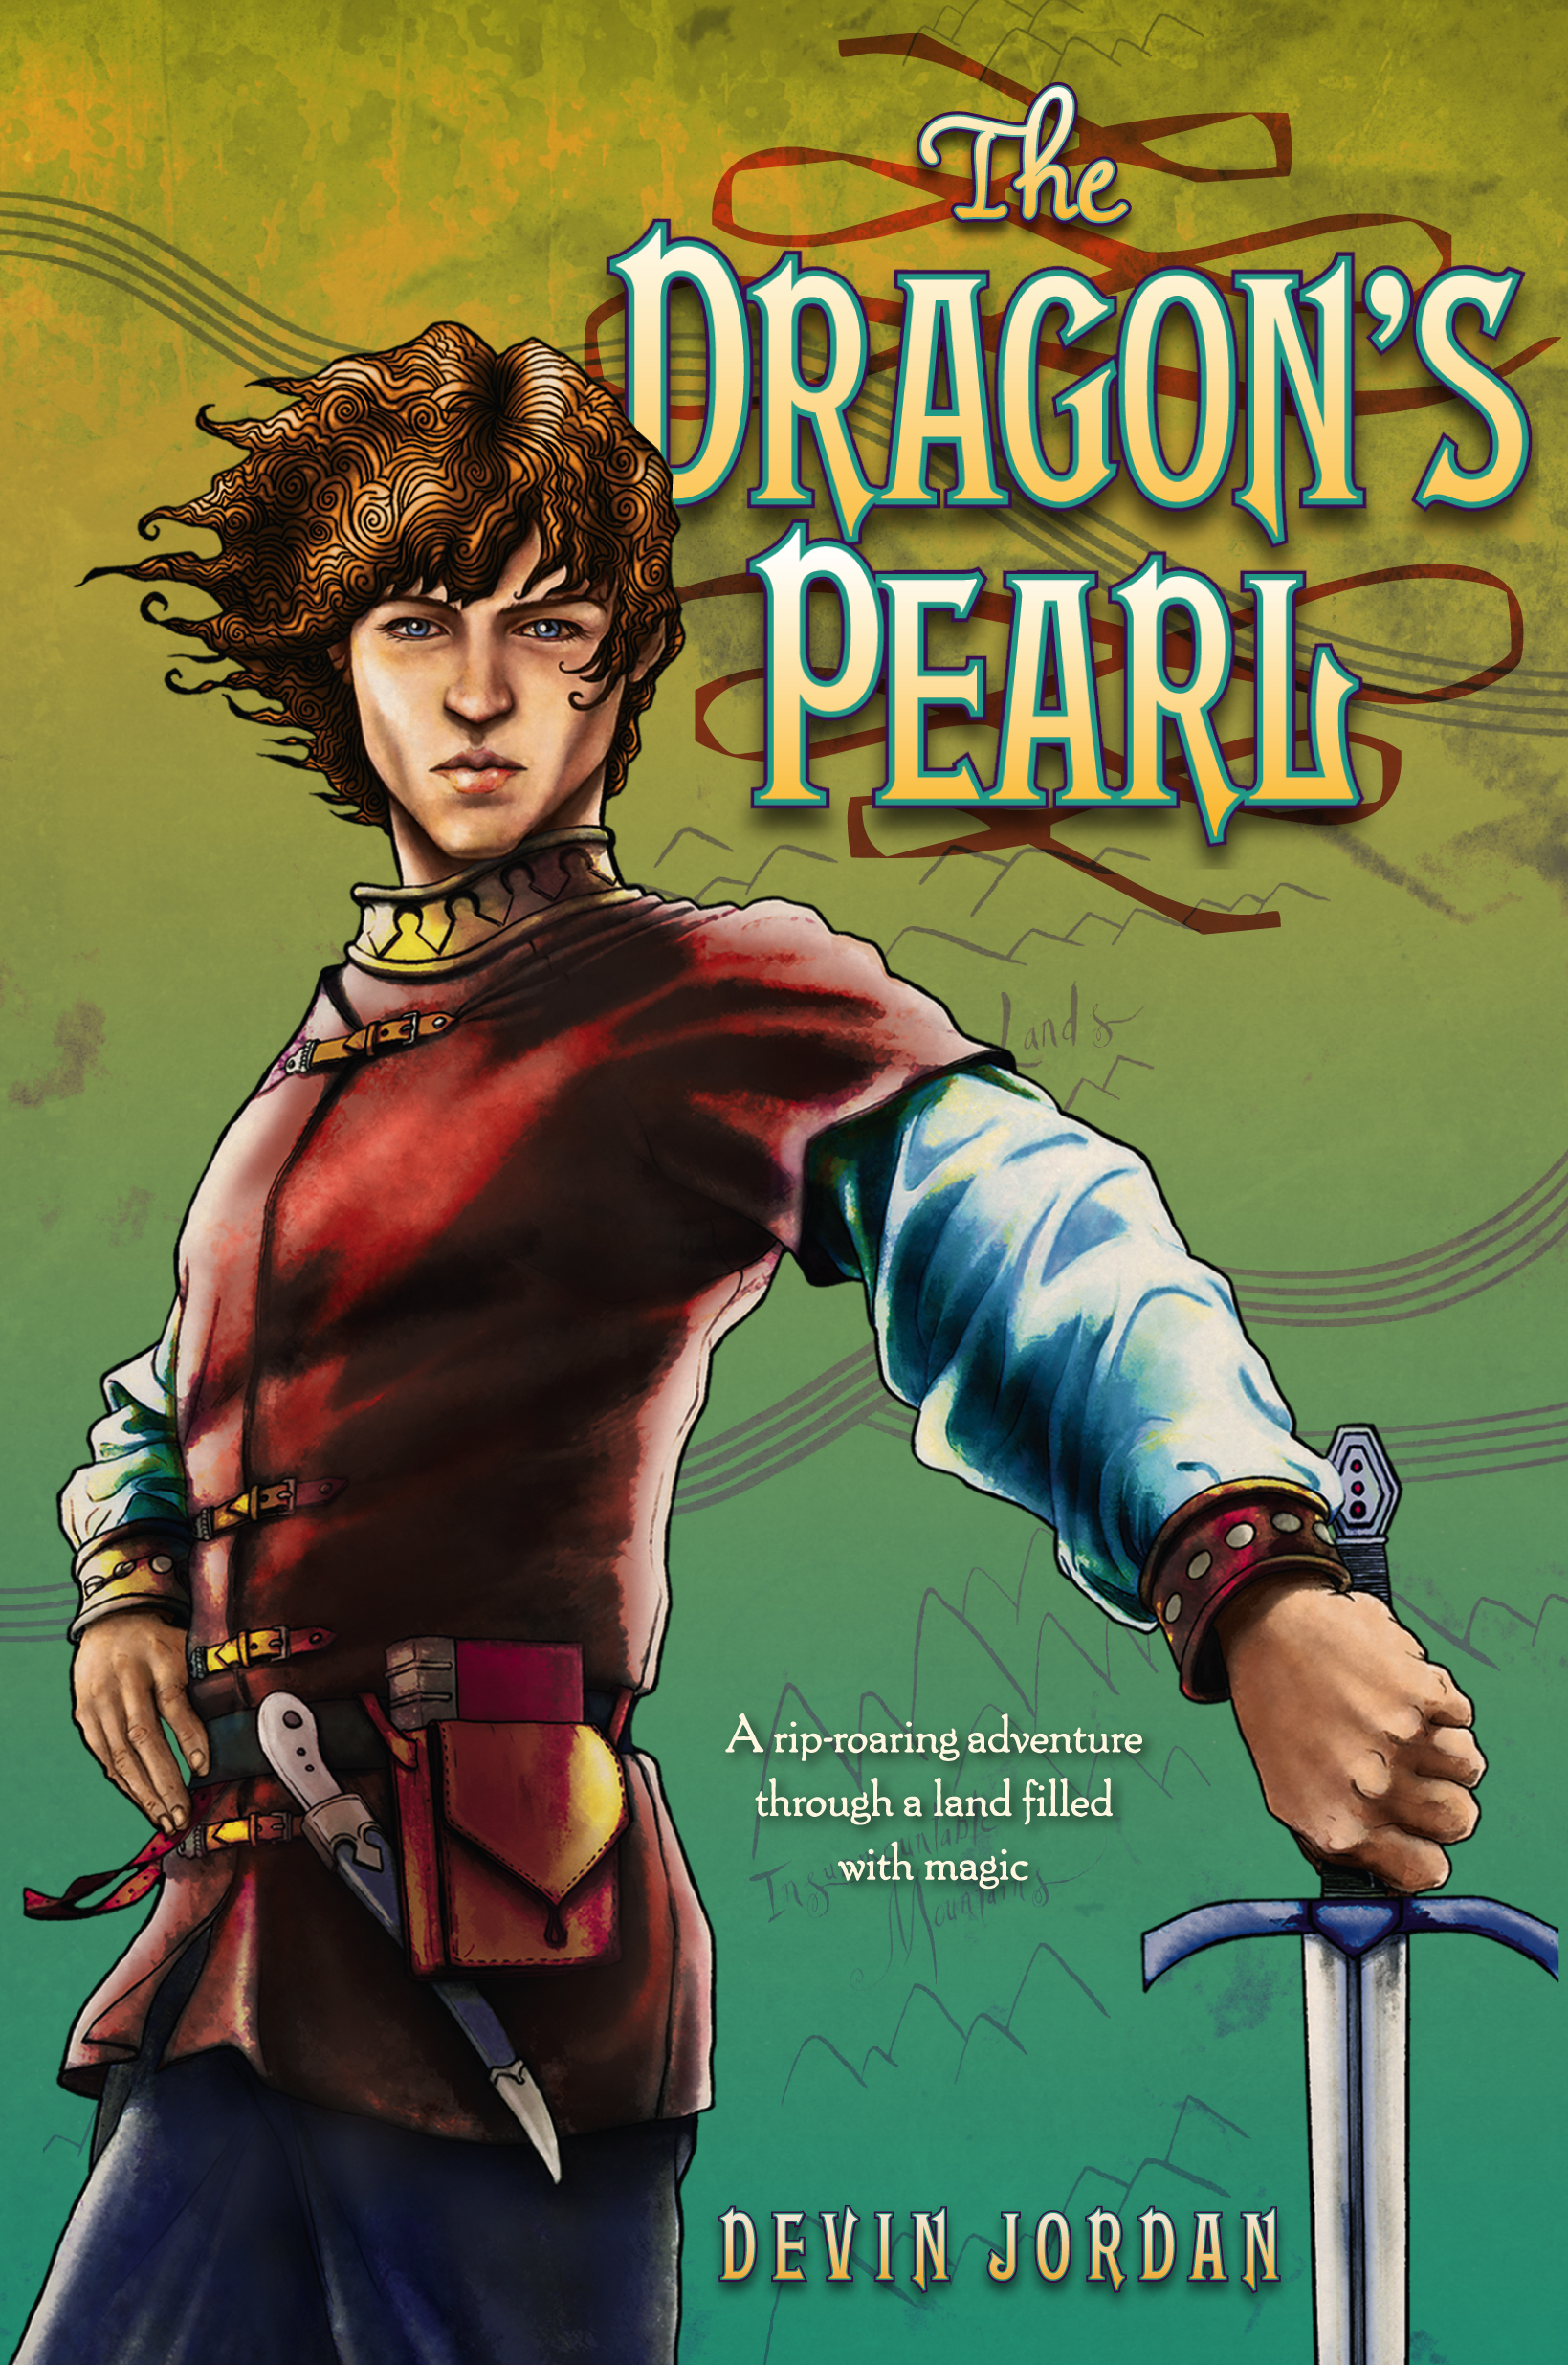 Book Cover Image (jpg): The Dragon's Pearl